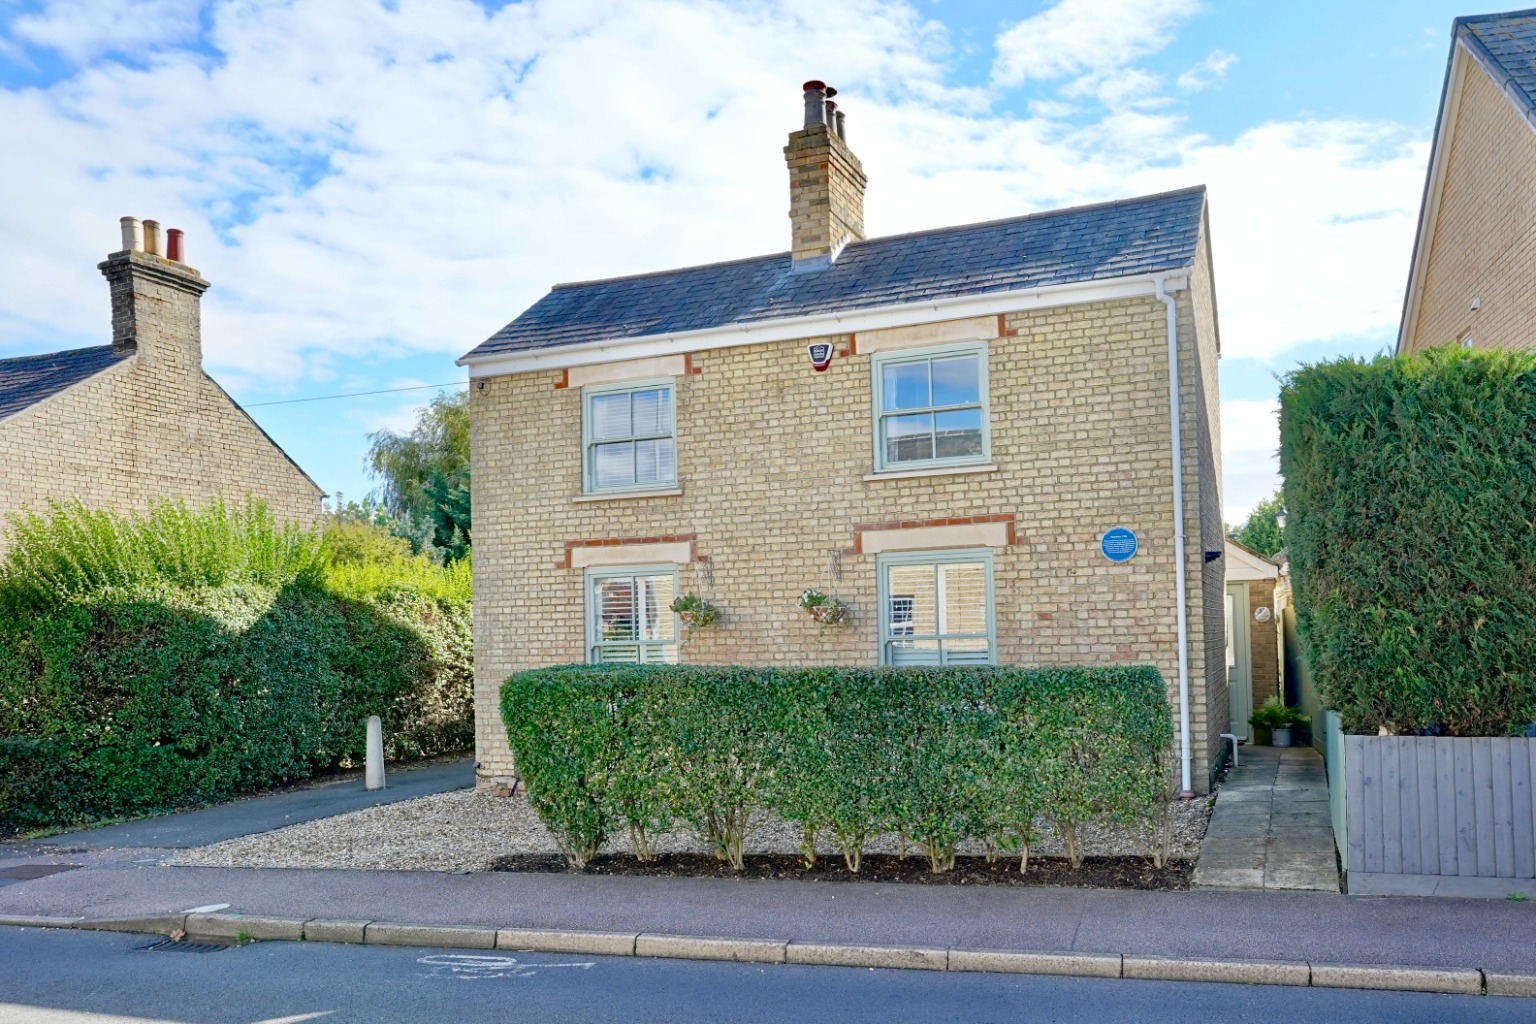 4 bed  for sale in St. Neots Road, St. Neots, PE19